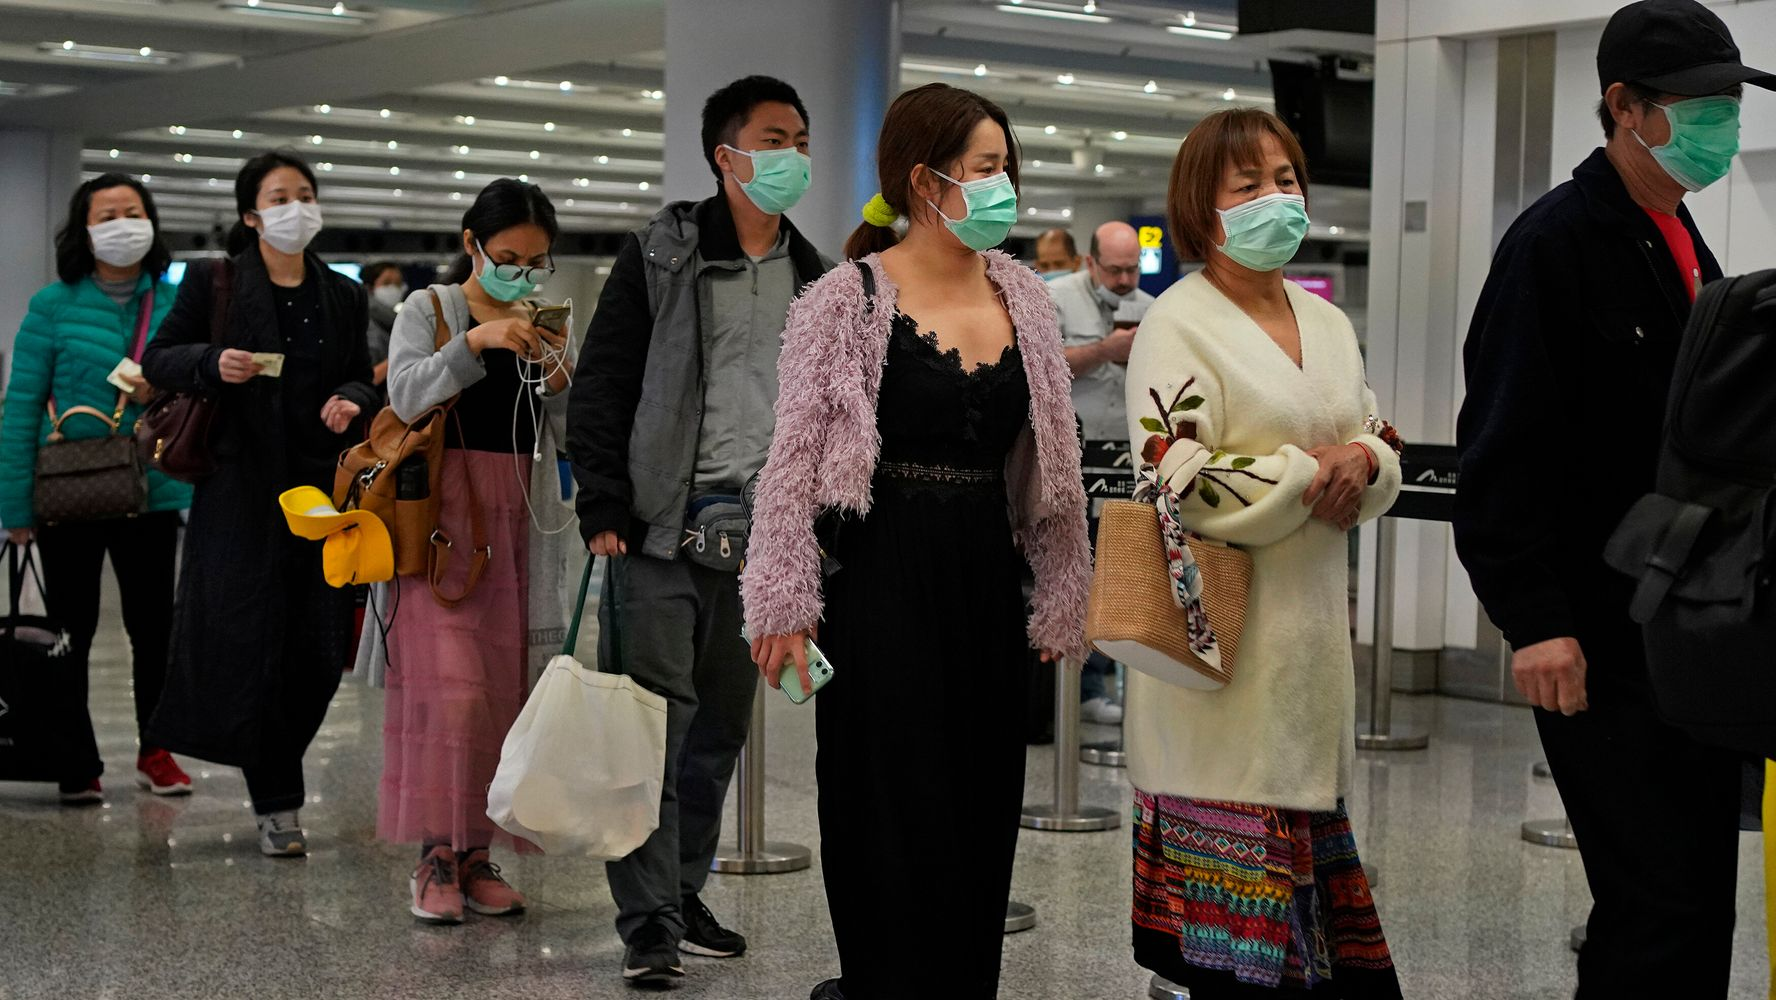 5e2d1d31240000310064c4be - More Than 2,000 Worldwide Now Infected With Coronavirus; 56 Dead In China